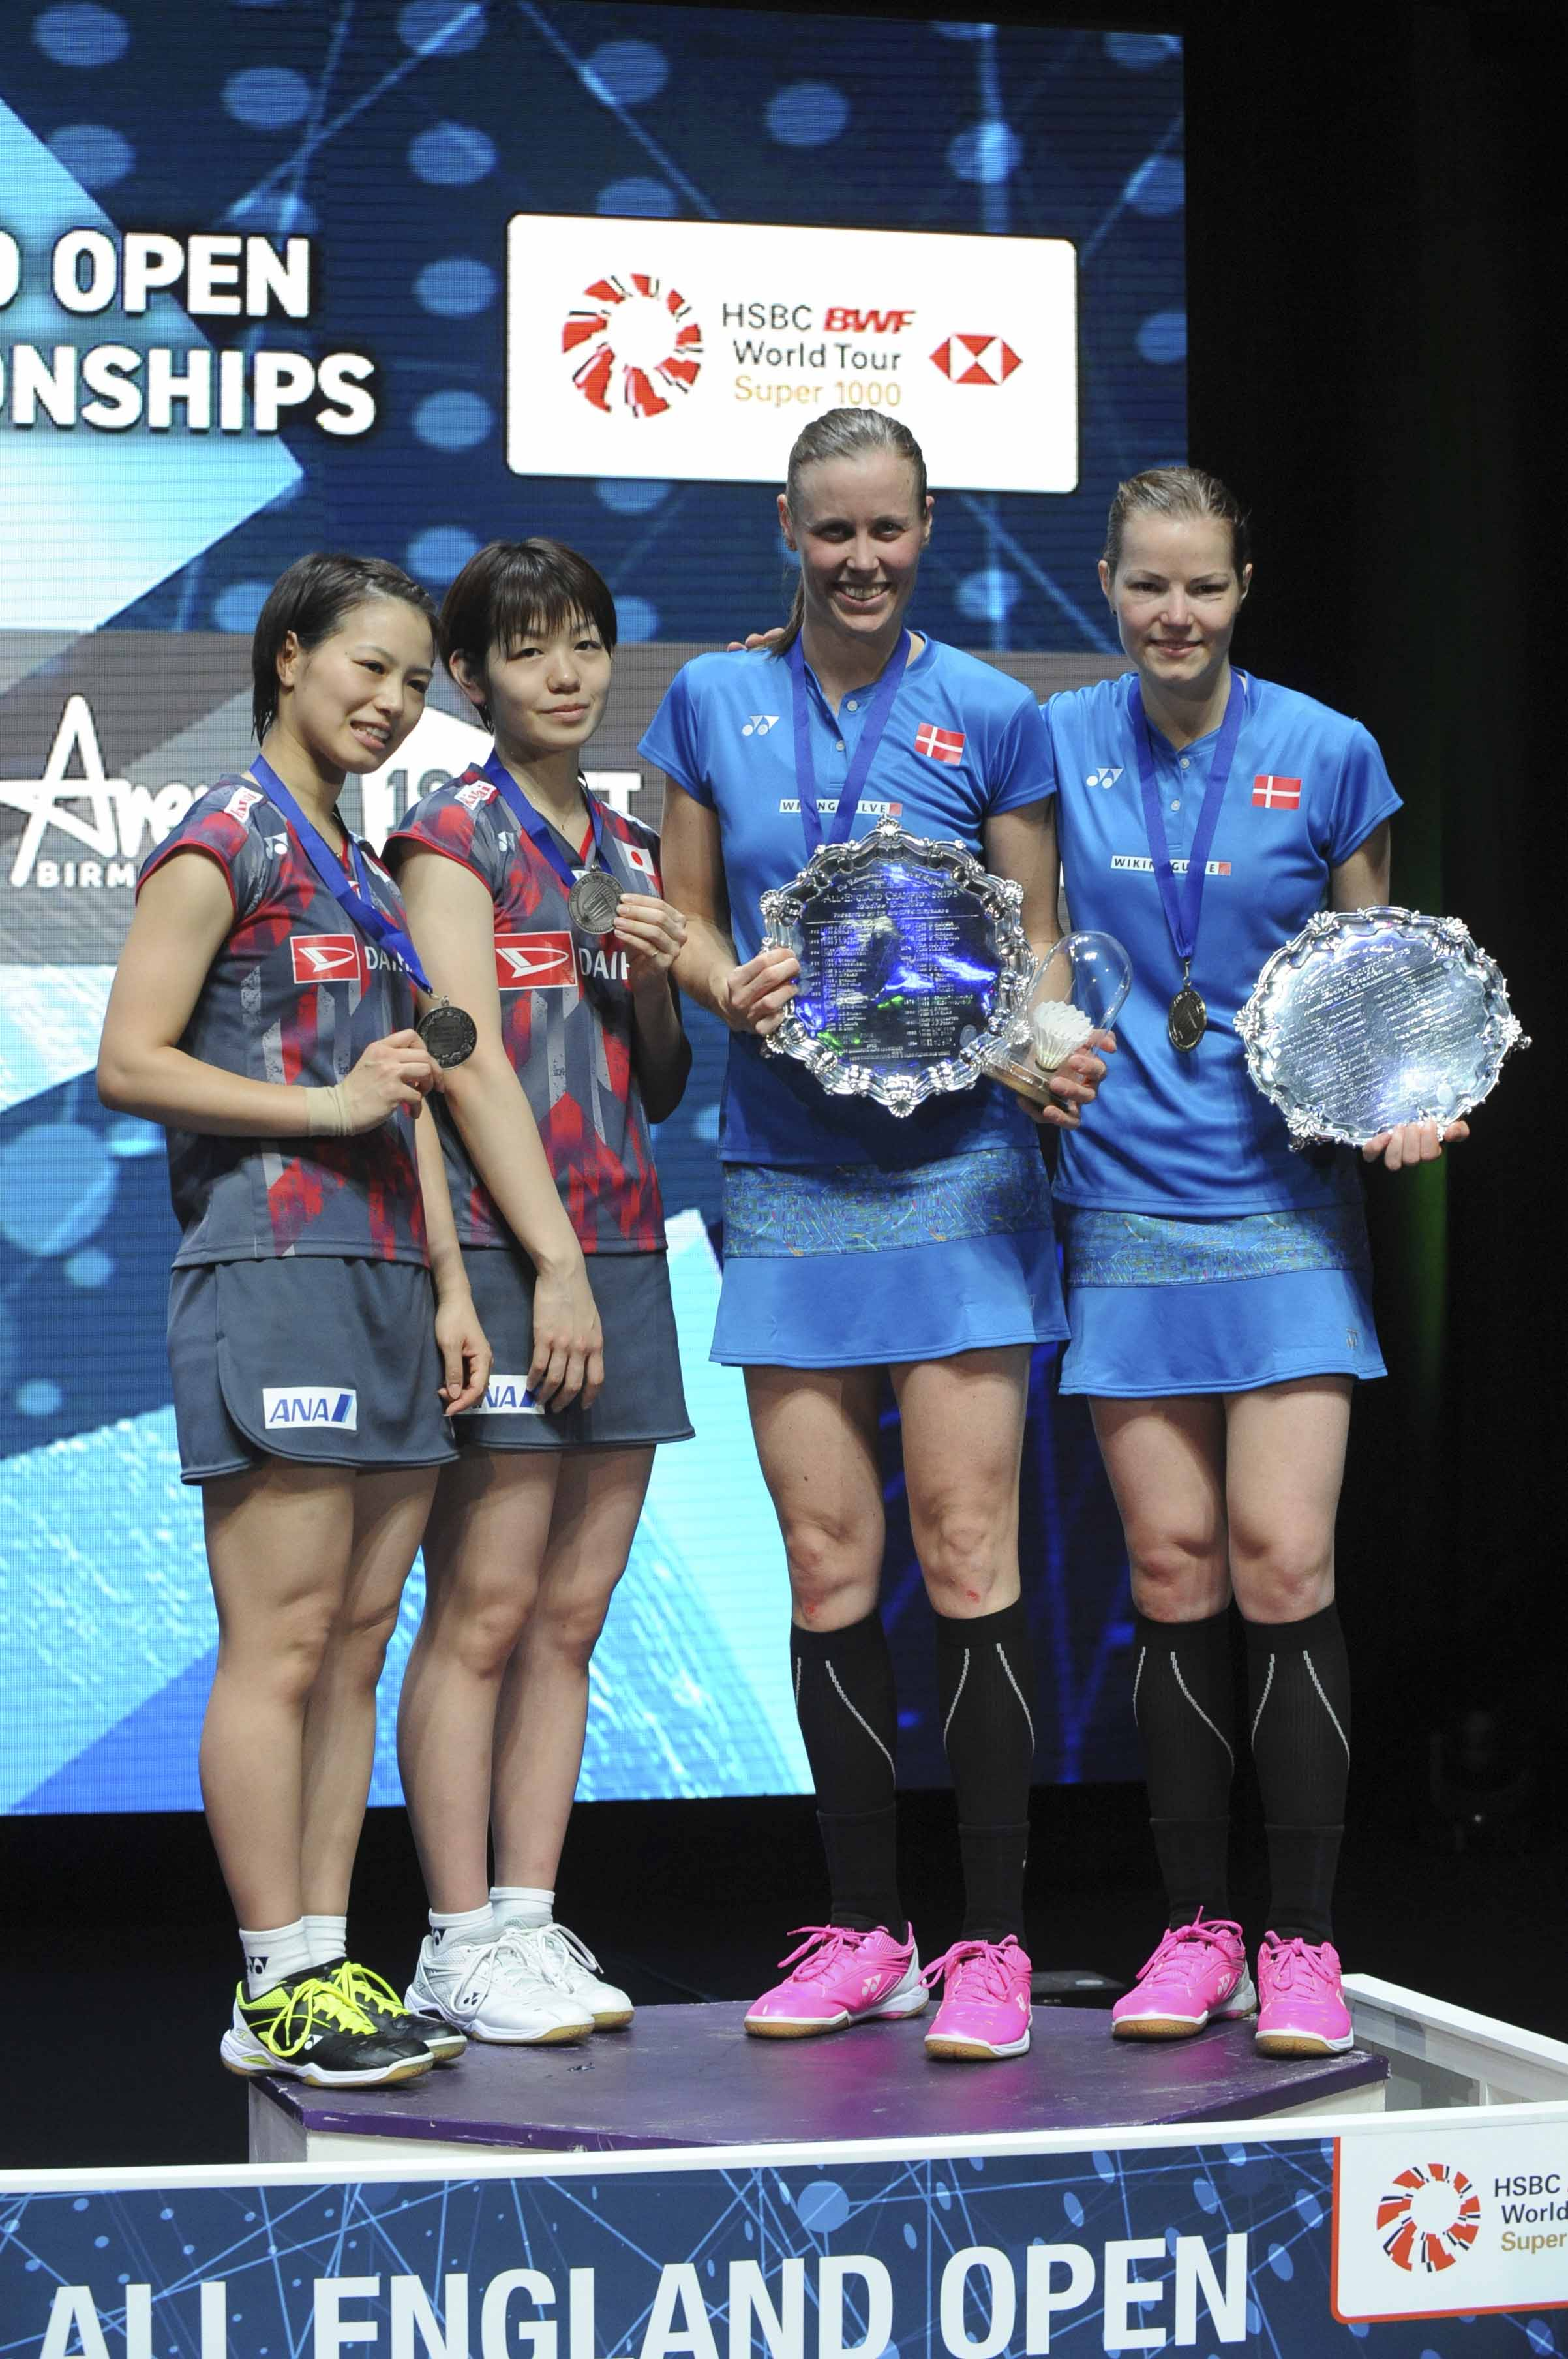 Winners Denmark's Kamilla Rytter Juhl and Christinna Padersen (right) pose on the podium with second placed Japan's Yuki Fukushima (left) and Sayaka Hirota after the women's doubles final match at the All England Open Badminton tournament in Birmingham, England on Sunday.